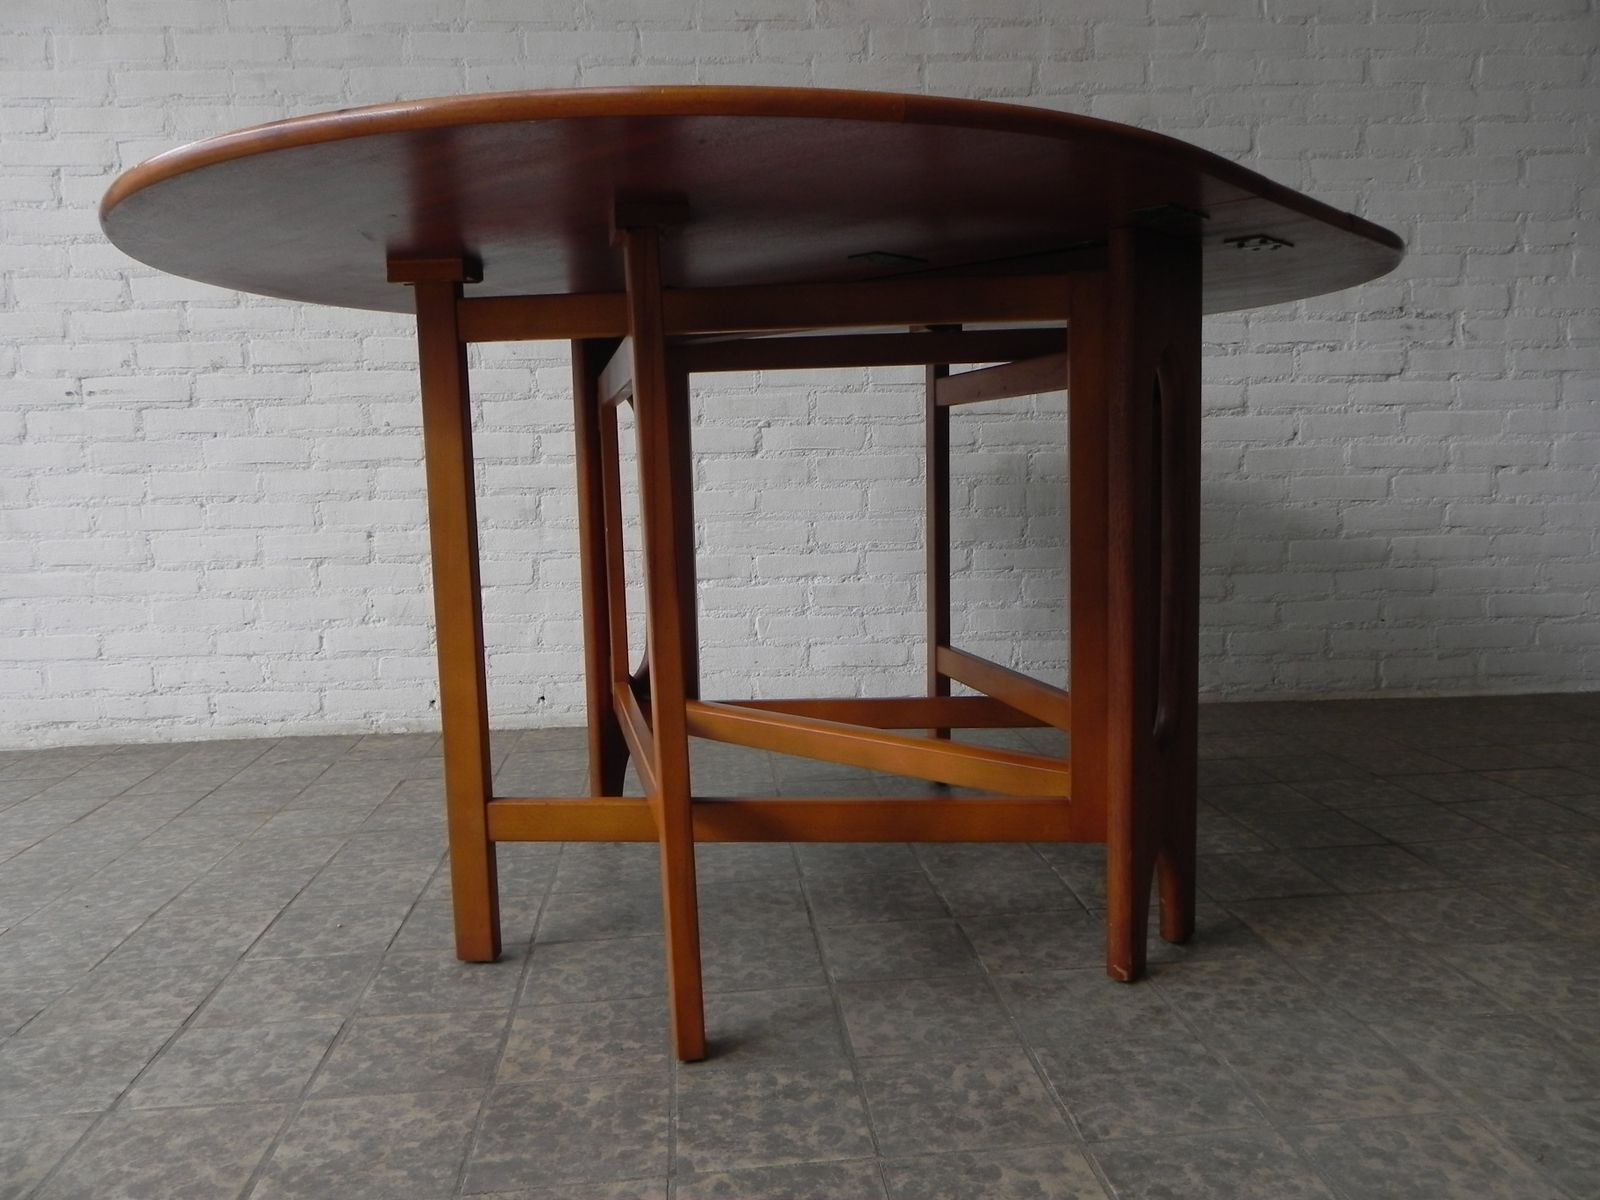 Danish Dining Table with Drop Leaf 1970s for sale at Pamono